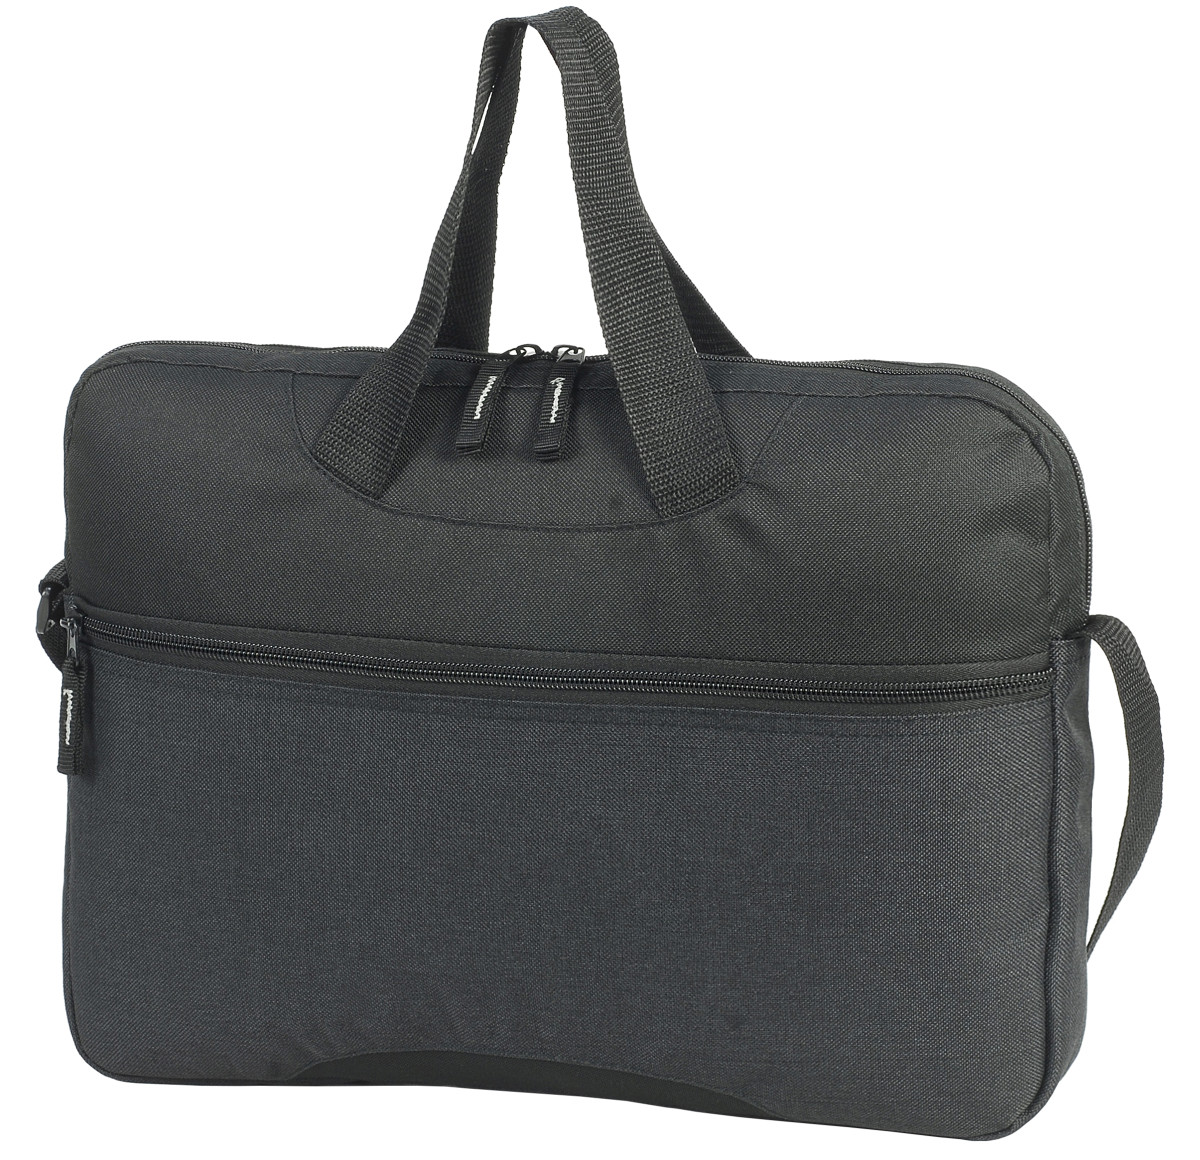 Shugon Avignon Conference Bag